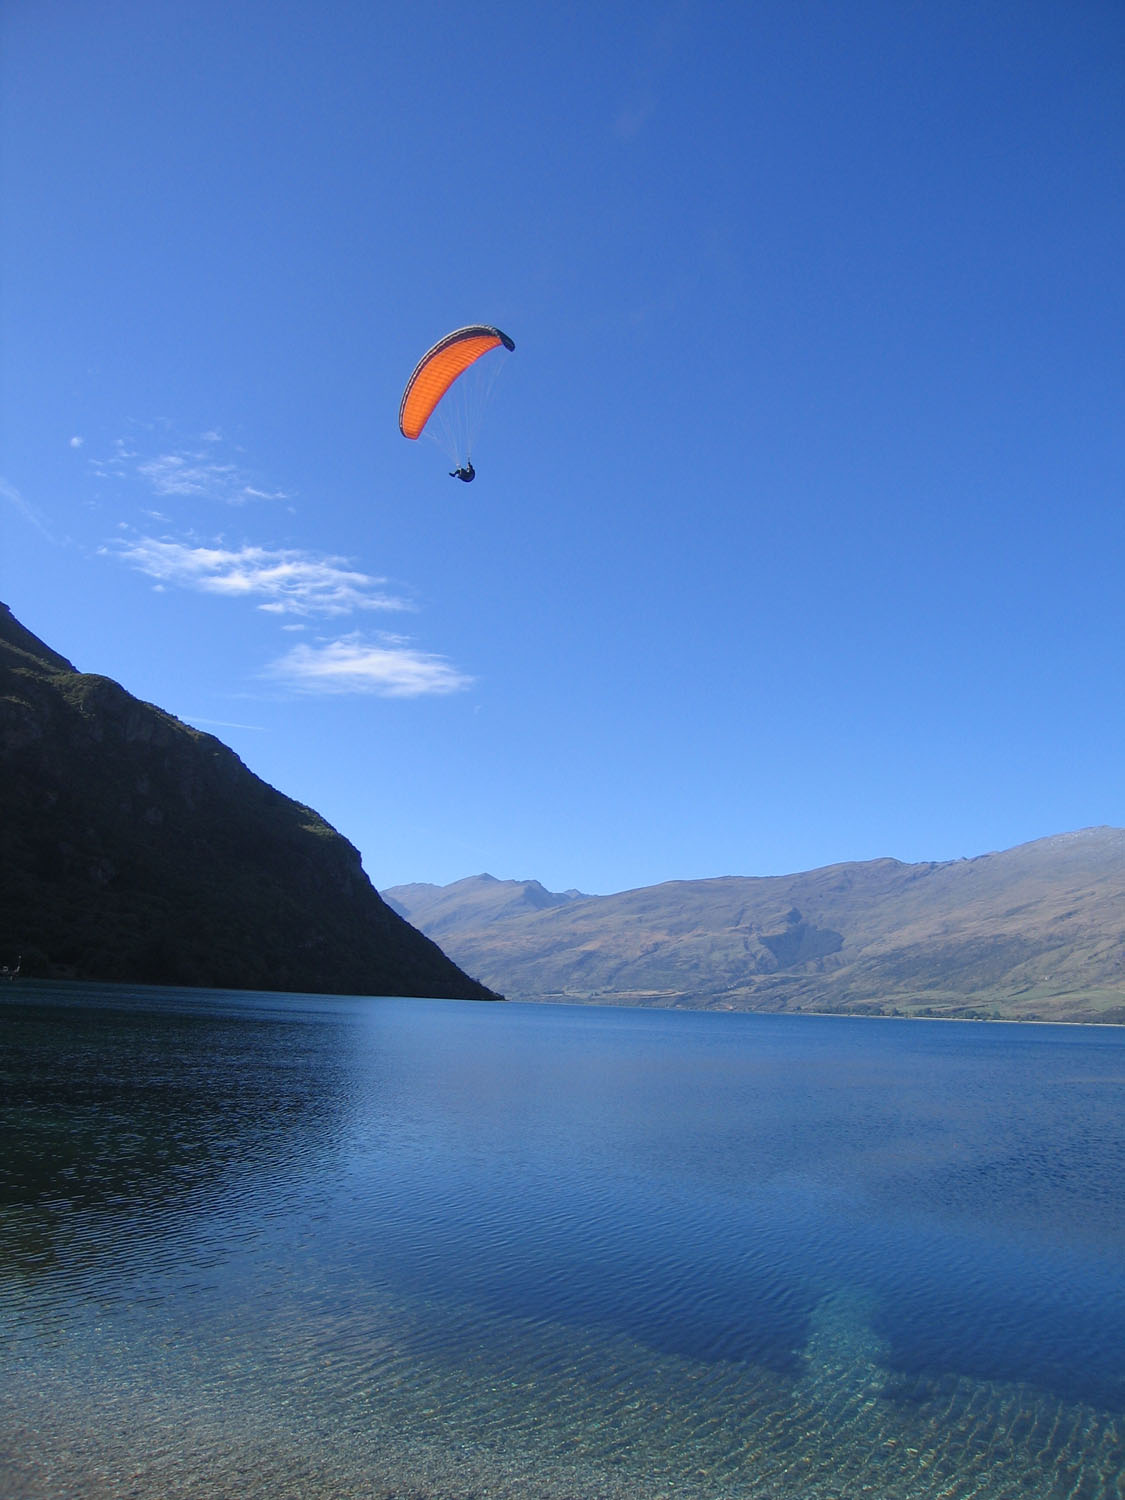 SIV Course - Infinity Paragliding 12